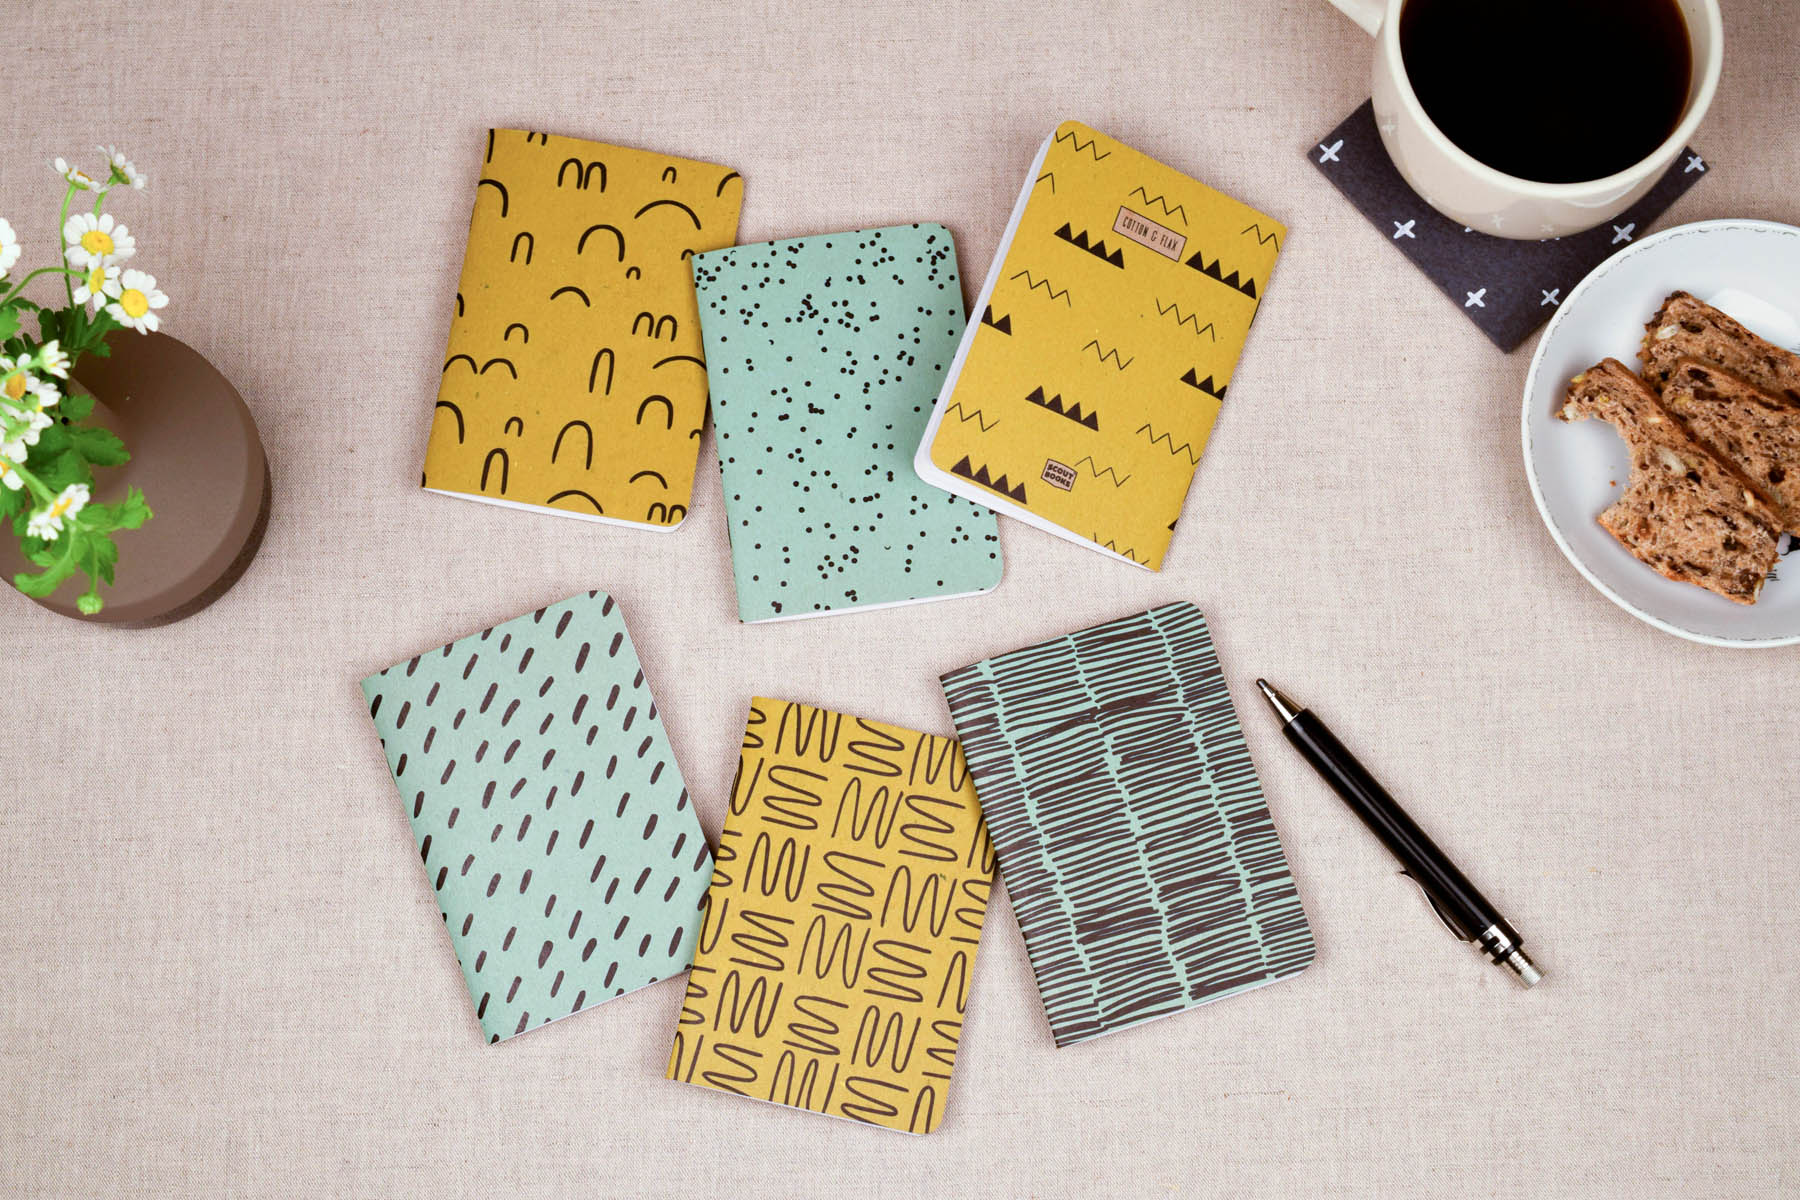 Cotton_&_Flax_Notebooks_01.jpg